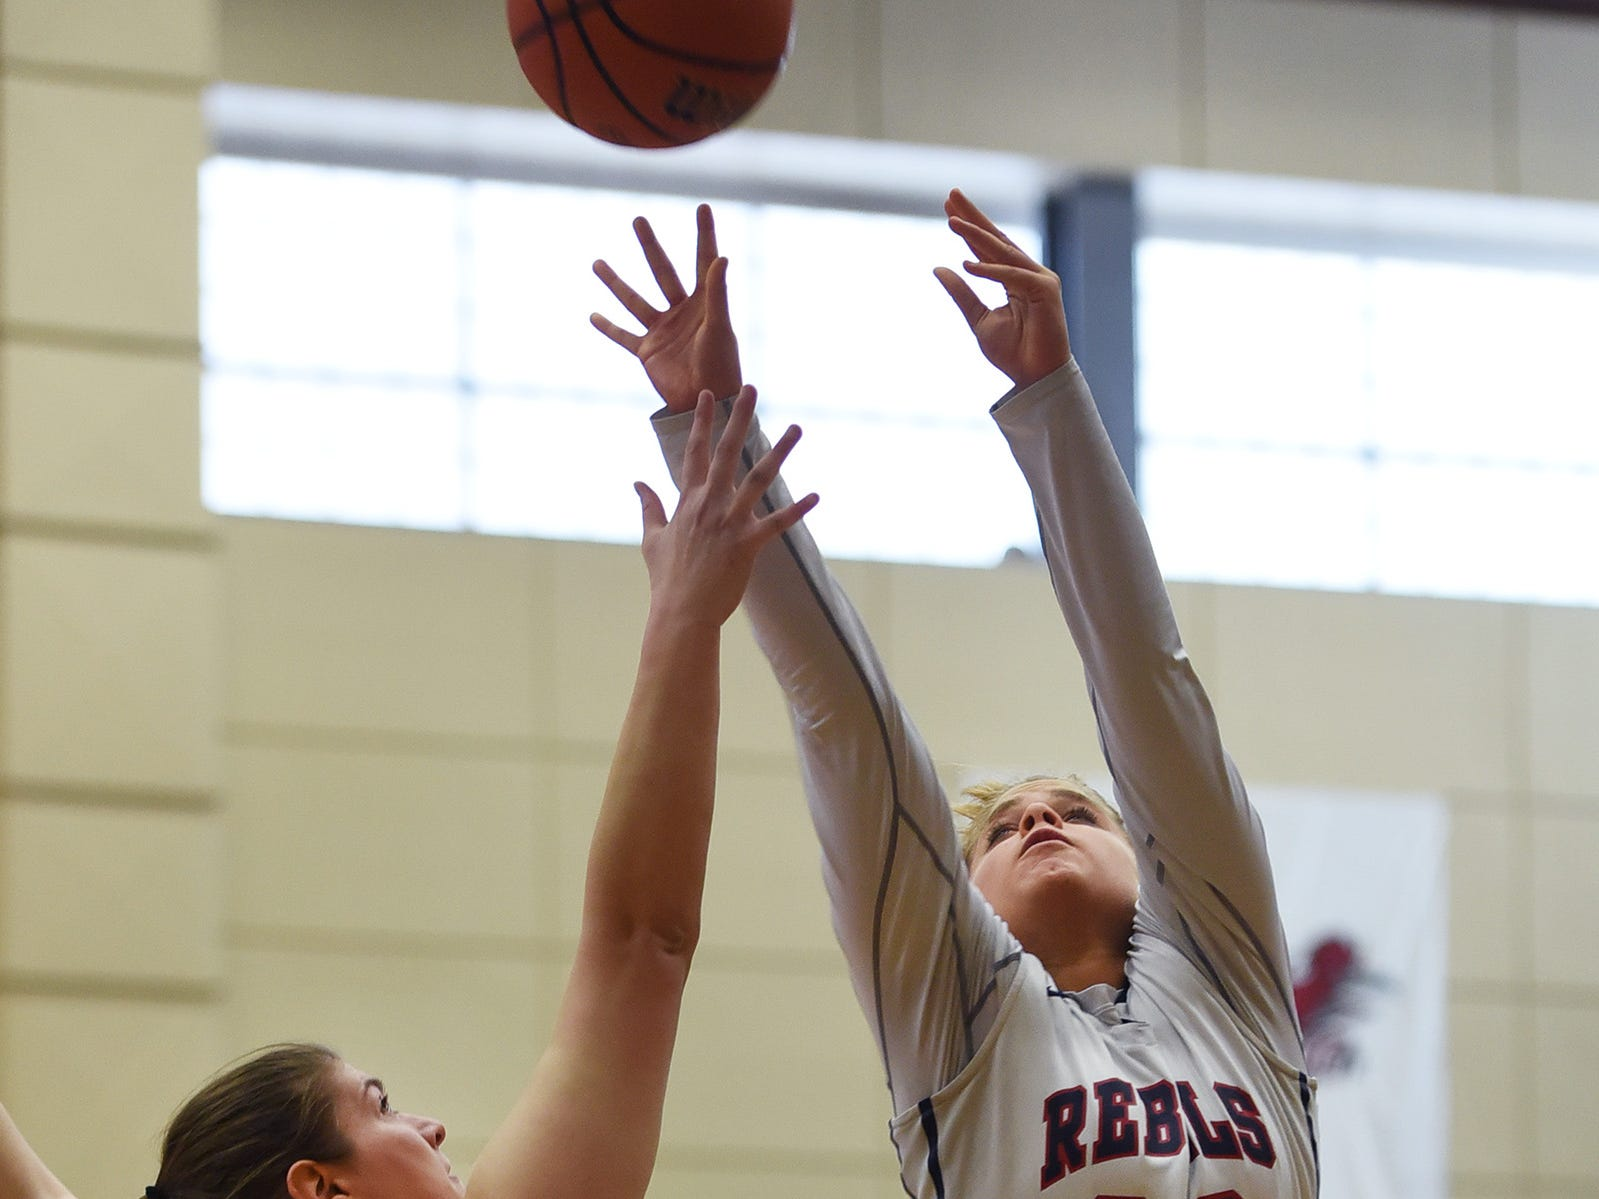 Jenna Jordan (no.33) of Saddle River Day makes a shot over Alexandra Hartman (no.24) of Paramus Catholic in the first half during the 2019 Bergen County girls basketball championship semifinal at Ramapo College in Mahwah on 02/10/19.